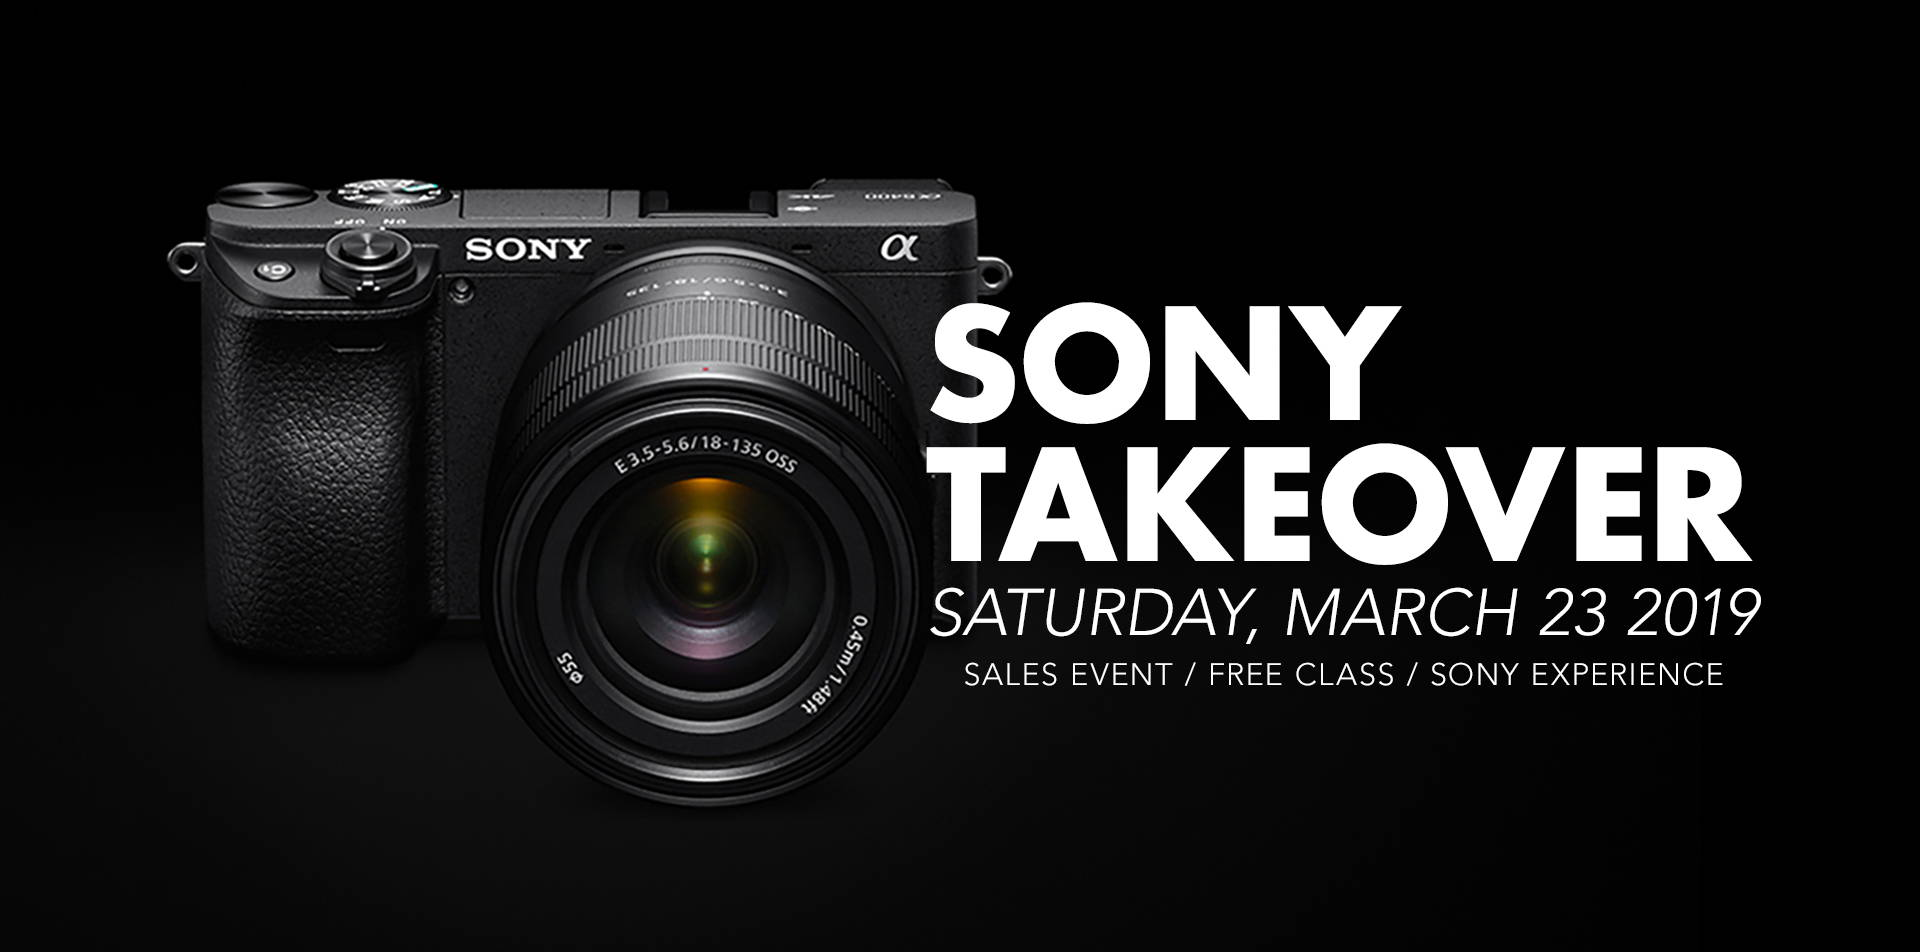 Sony Takeover - Saturday, March 23, 2019